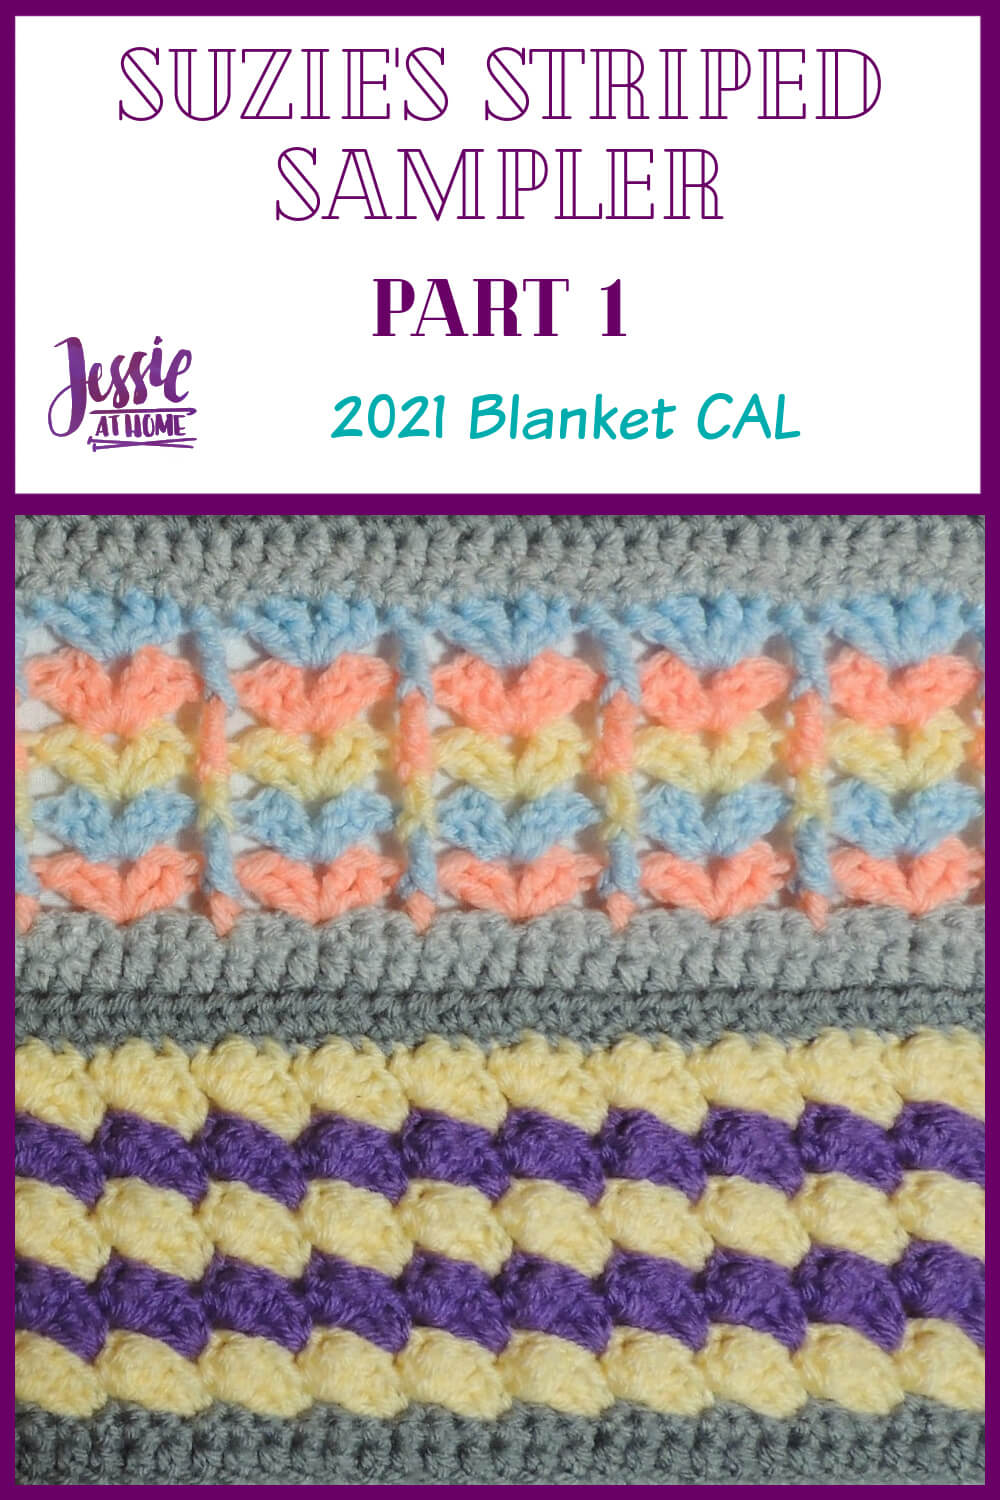 Suzie's Striped Sampler Part 1 by Jessie At Home - Pin 1